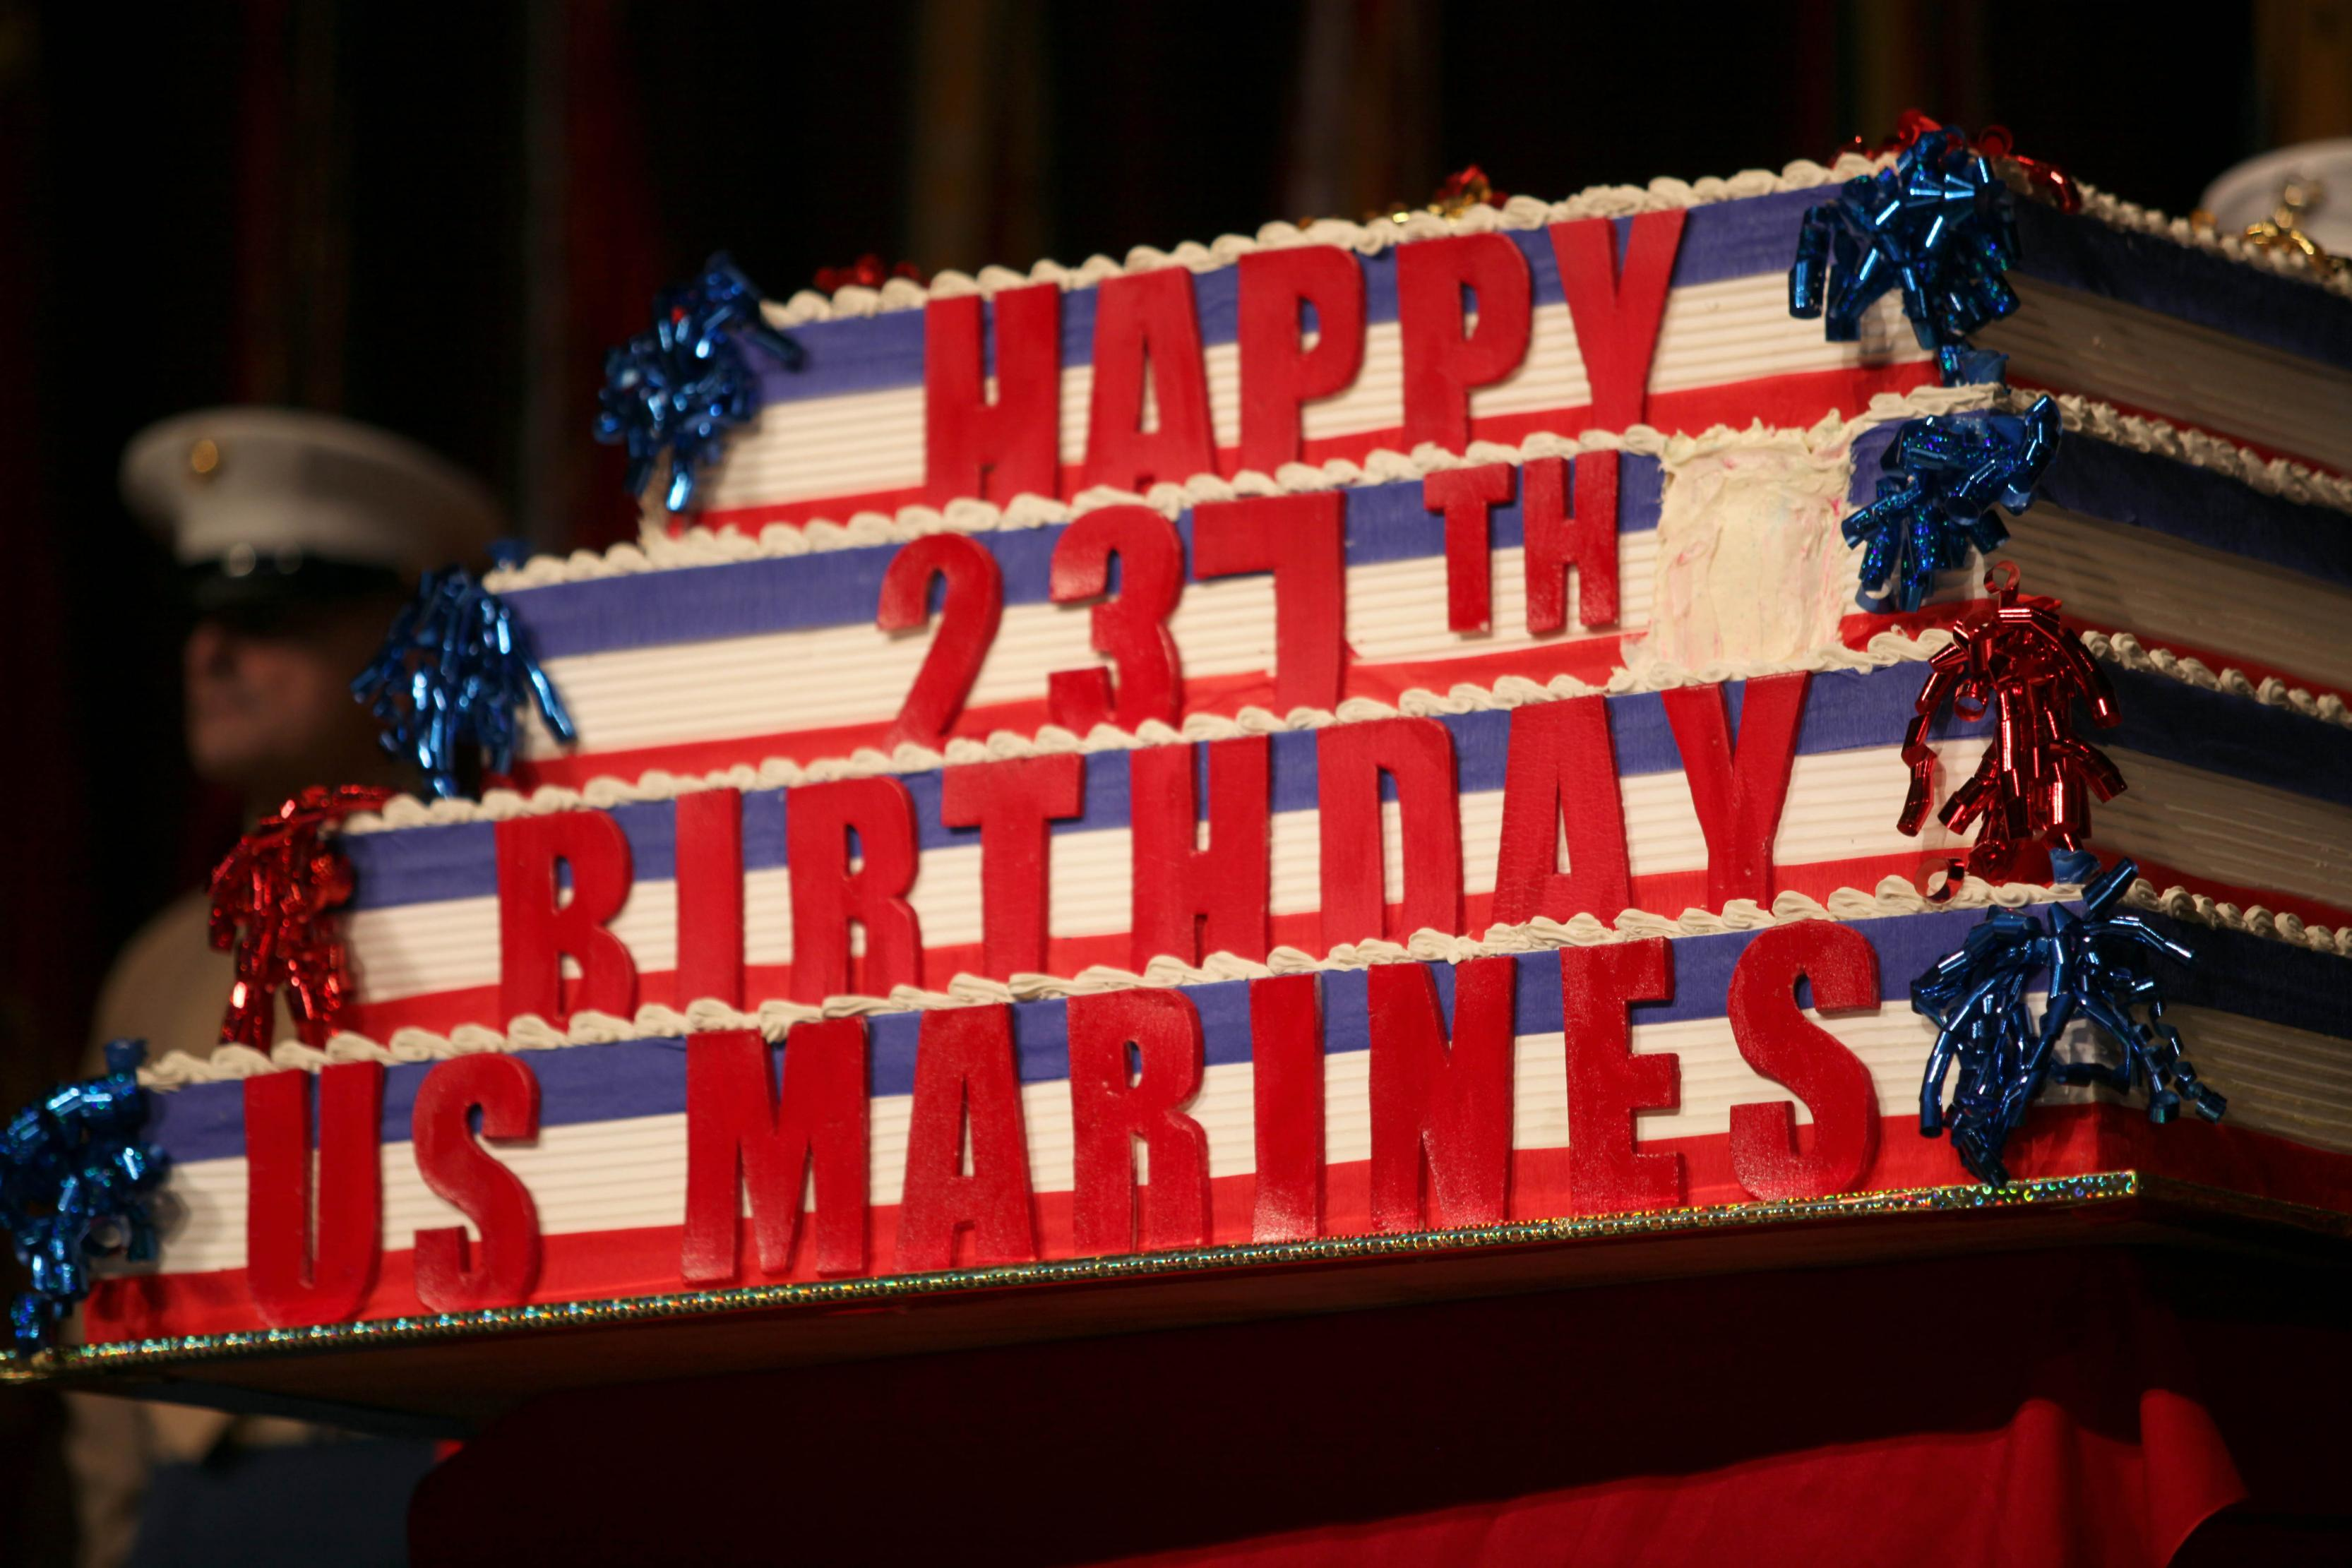 Happy 237th birthday to my beloved corps-121109-m-lm776-161.jpg